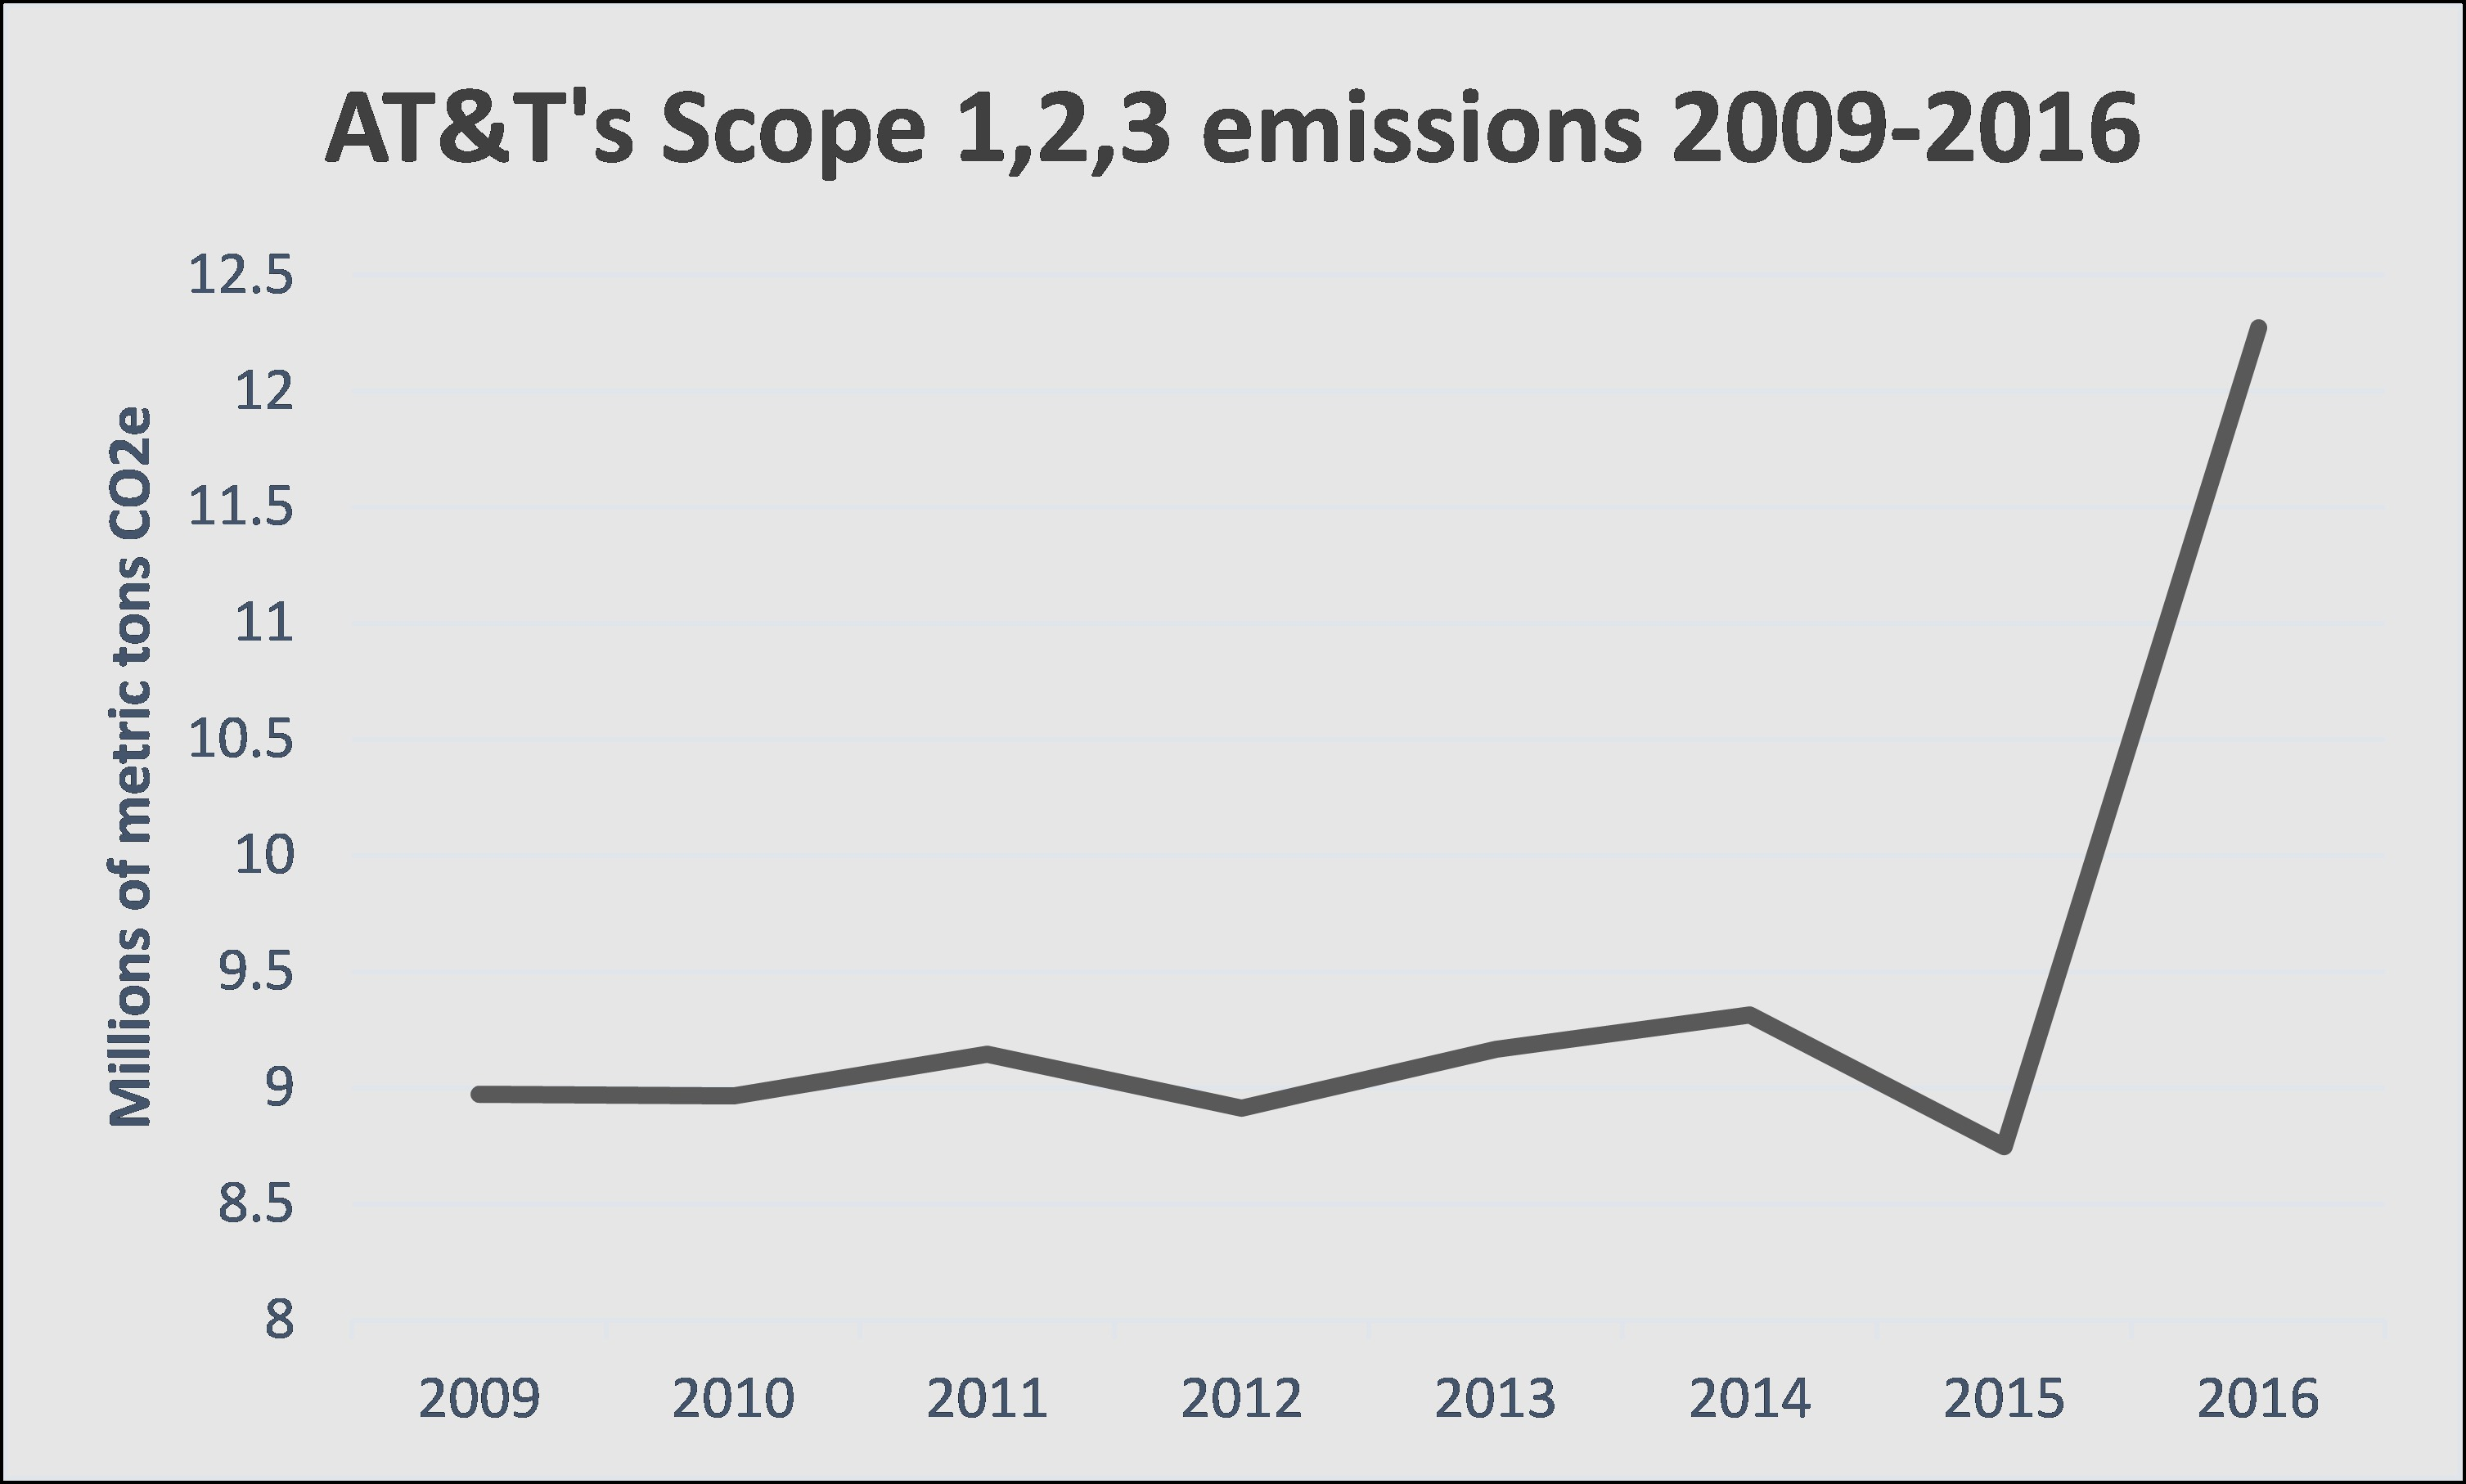 AT&T's Scope 1,2,3 emissions 2009-2016.jpg